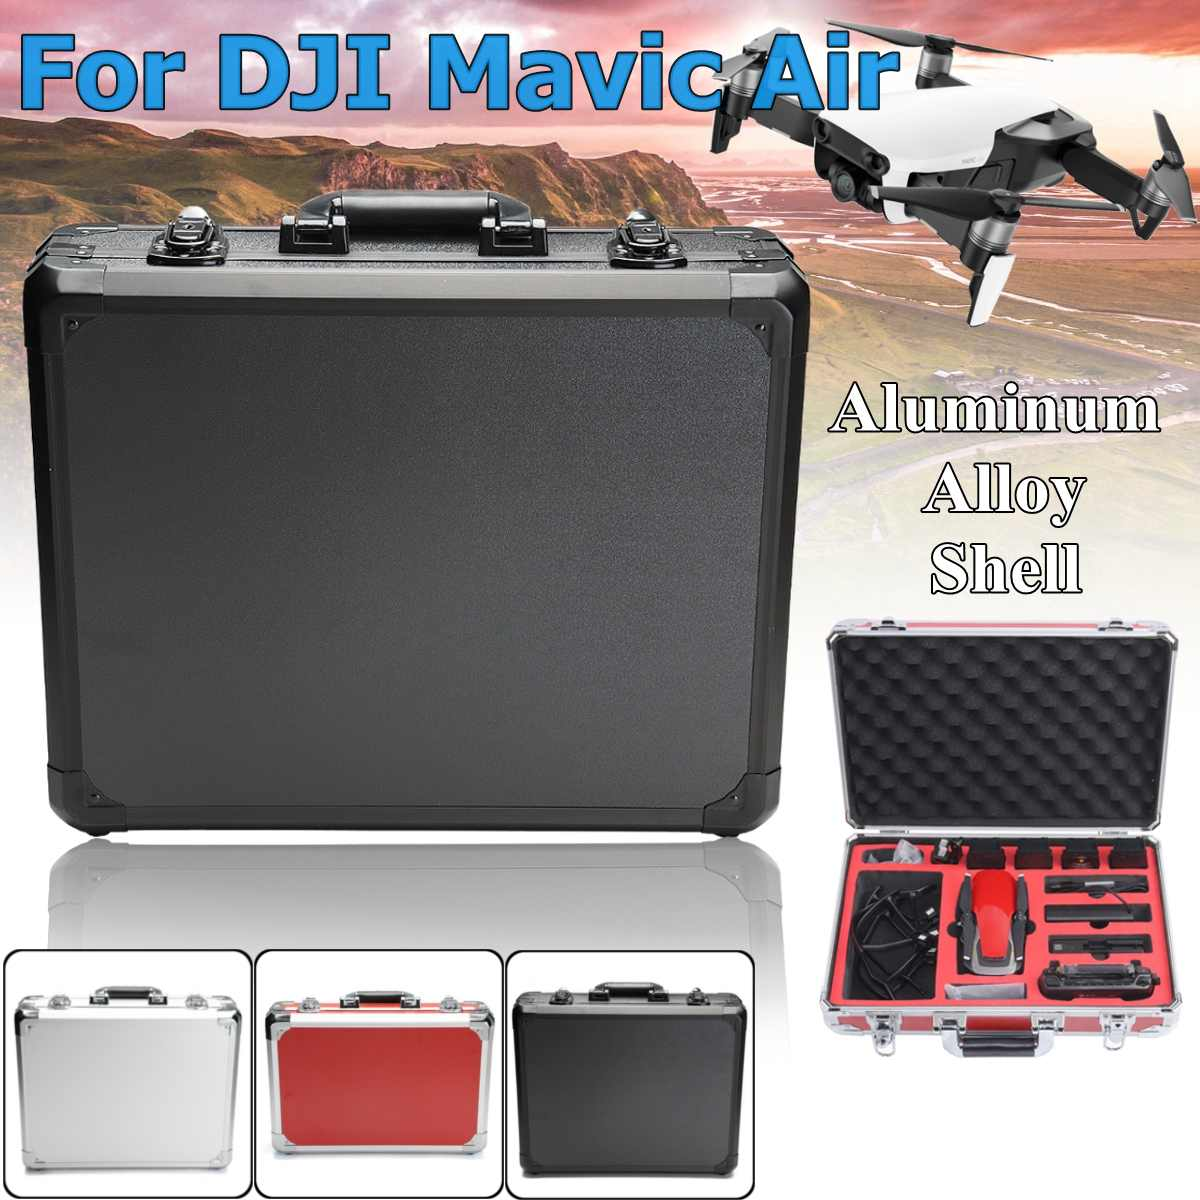 a Black Silver Red colour Standard Type Carrying Case for DJI Mavic Air with large capacity light weight